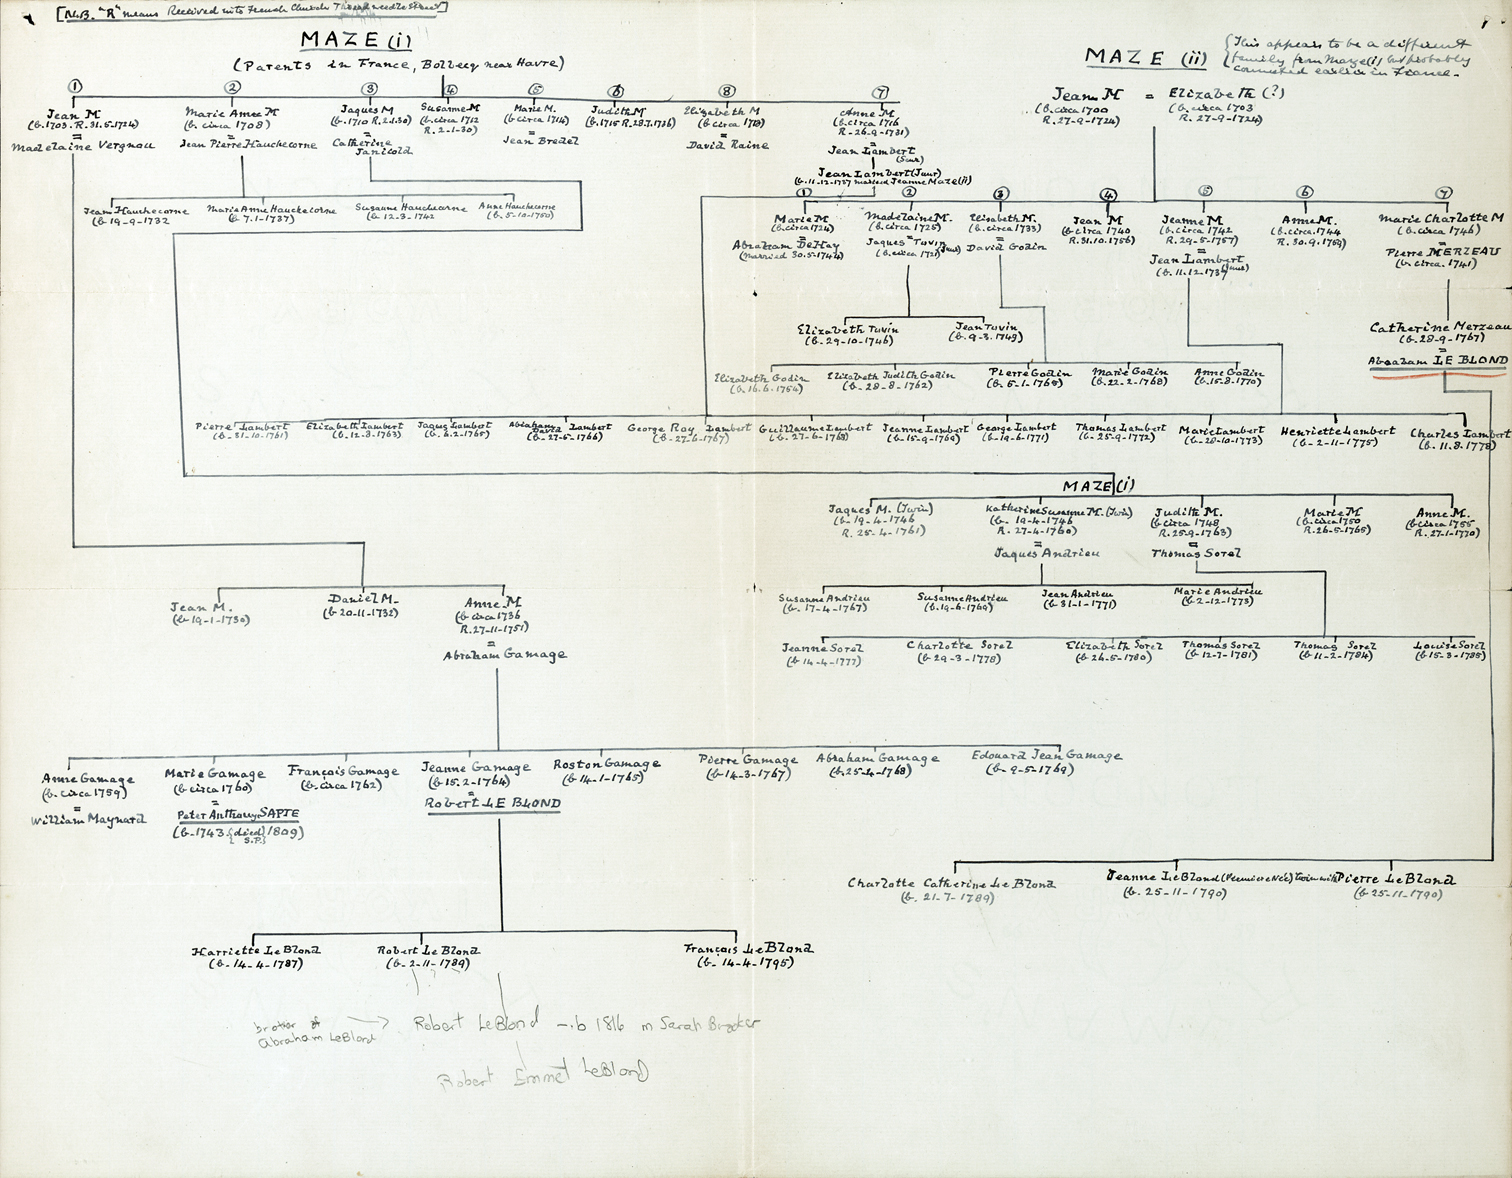 Lawrence LeBlond family tree 2